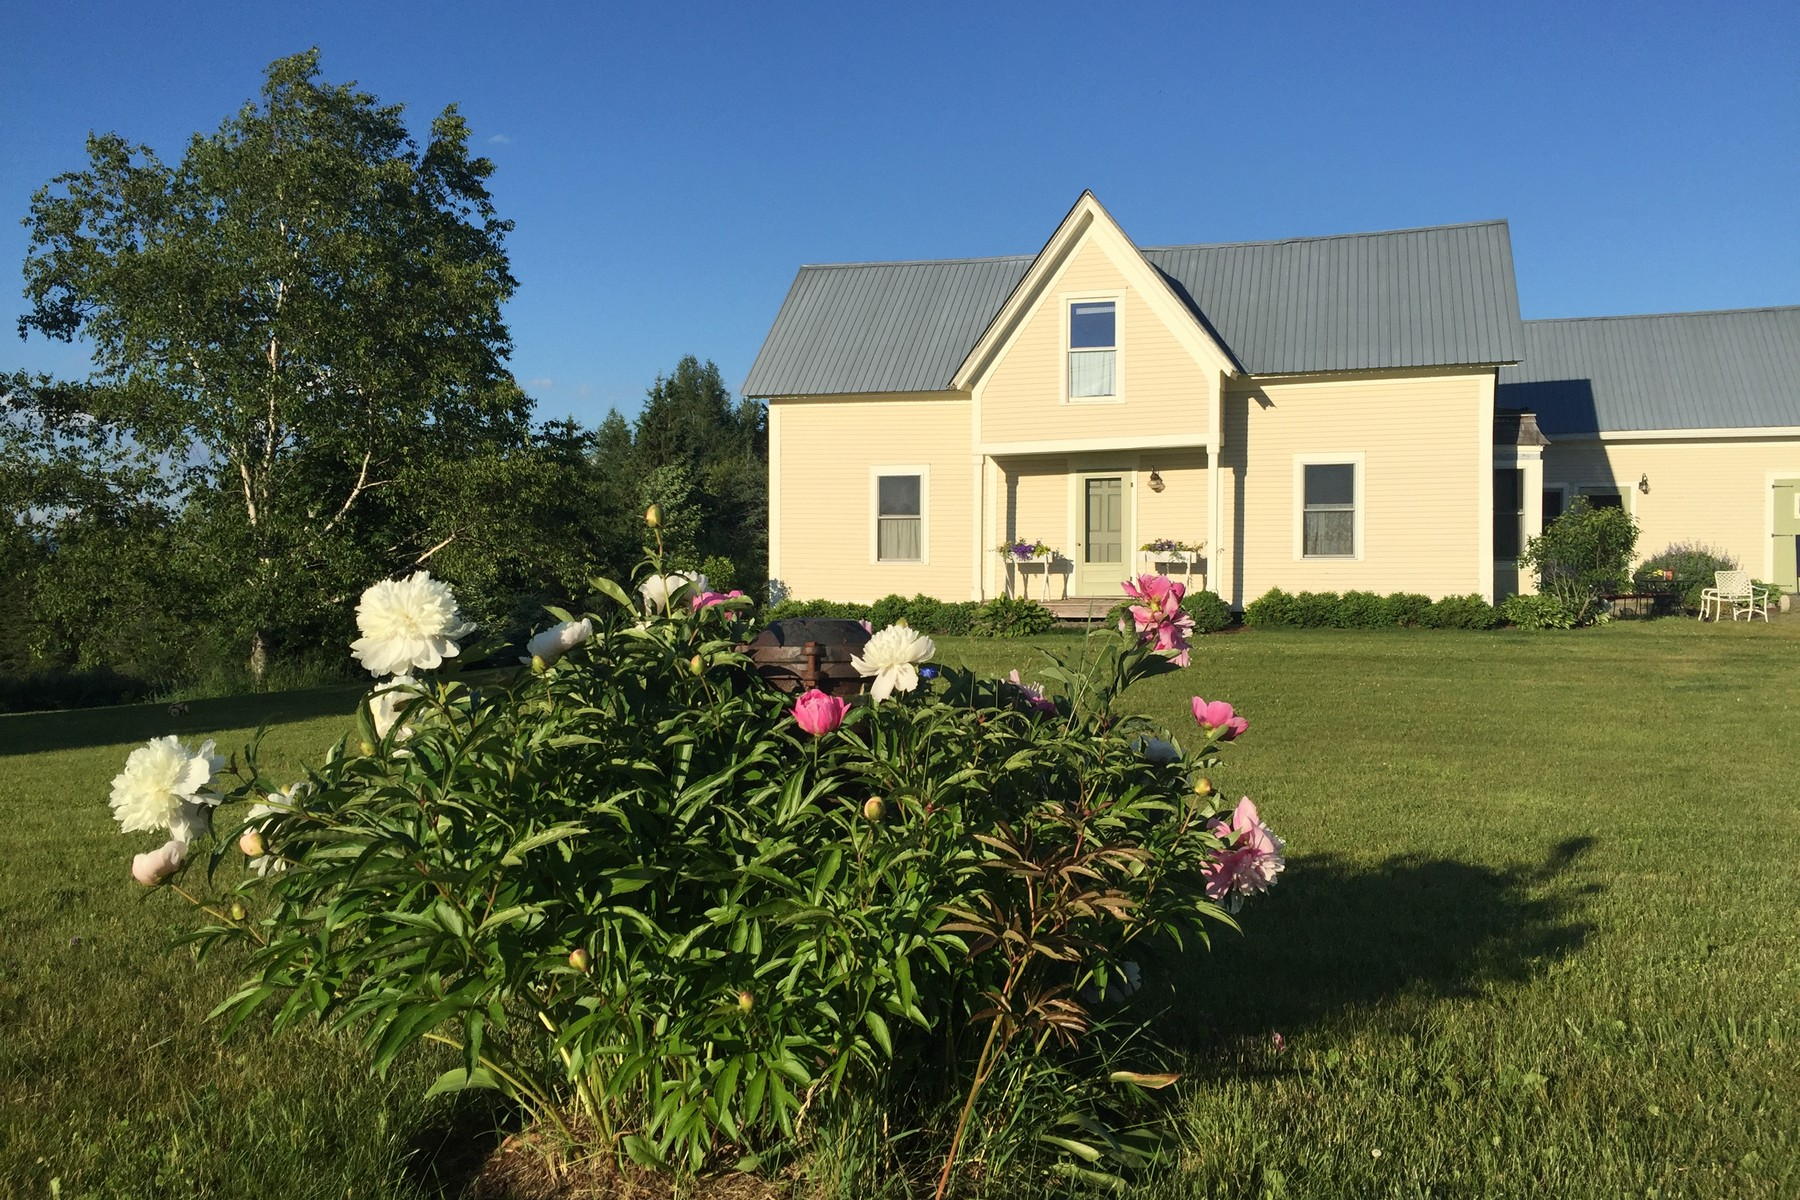 Single Family Home for Sale at Pastoral Danville Farmhouse 1499 Peacham Rd Danville, Vermont, 05828 United States